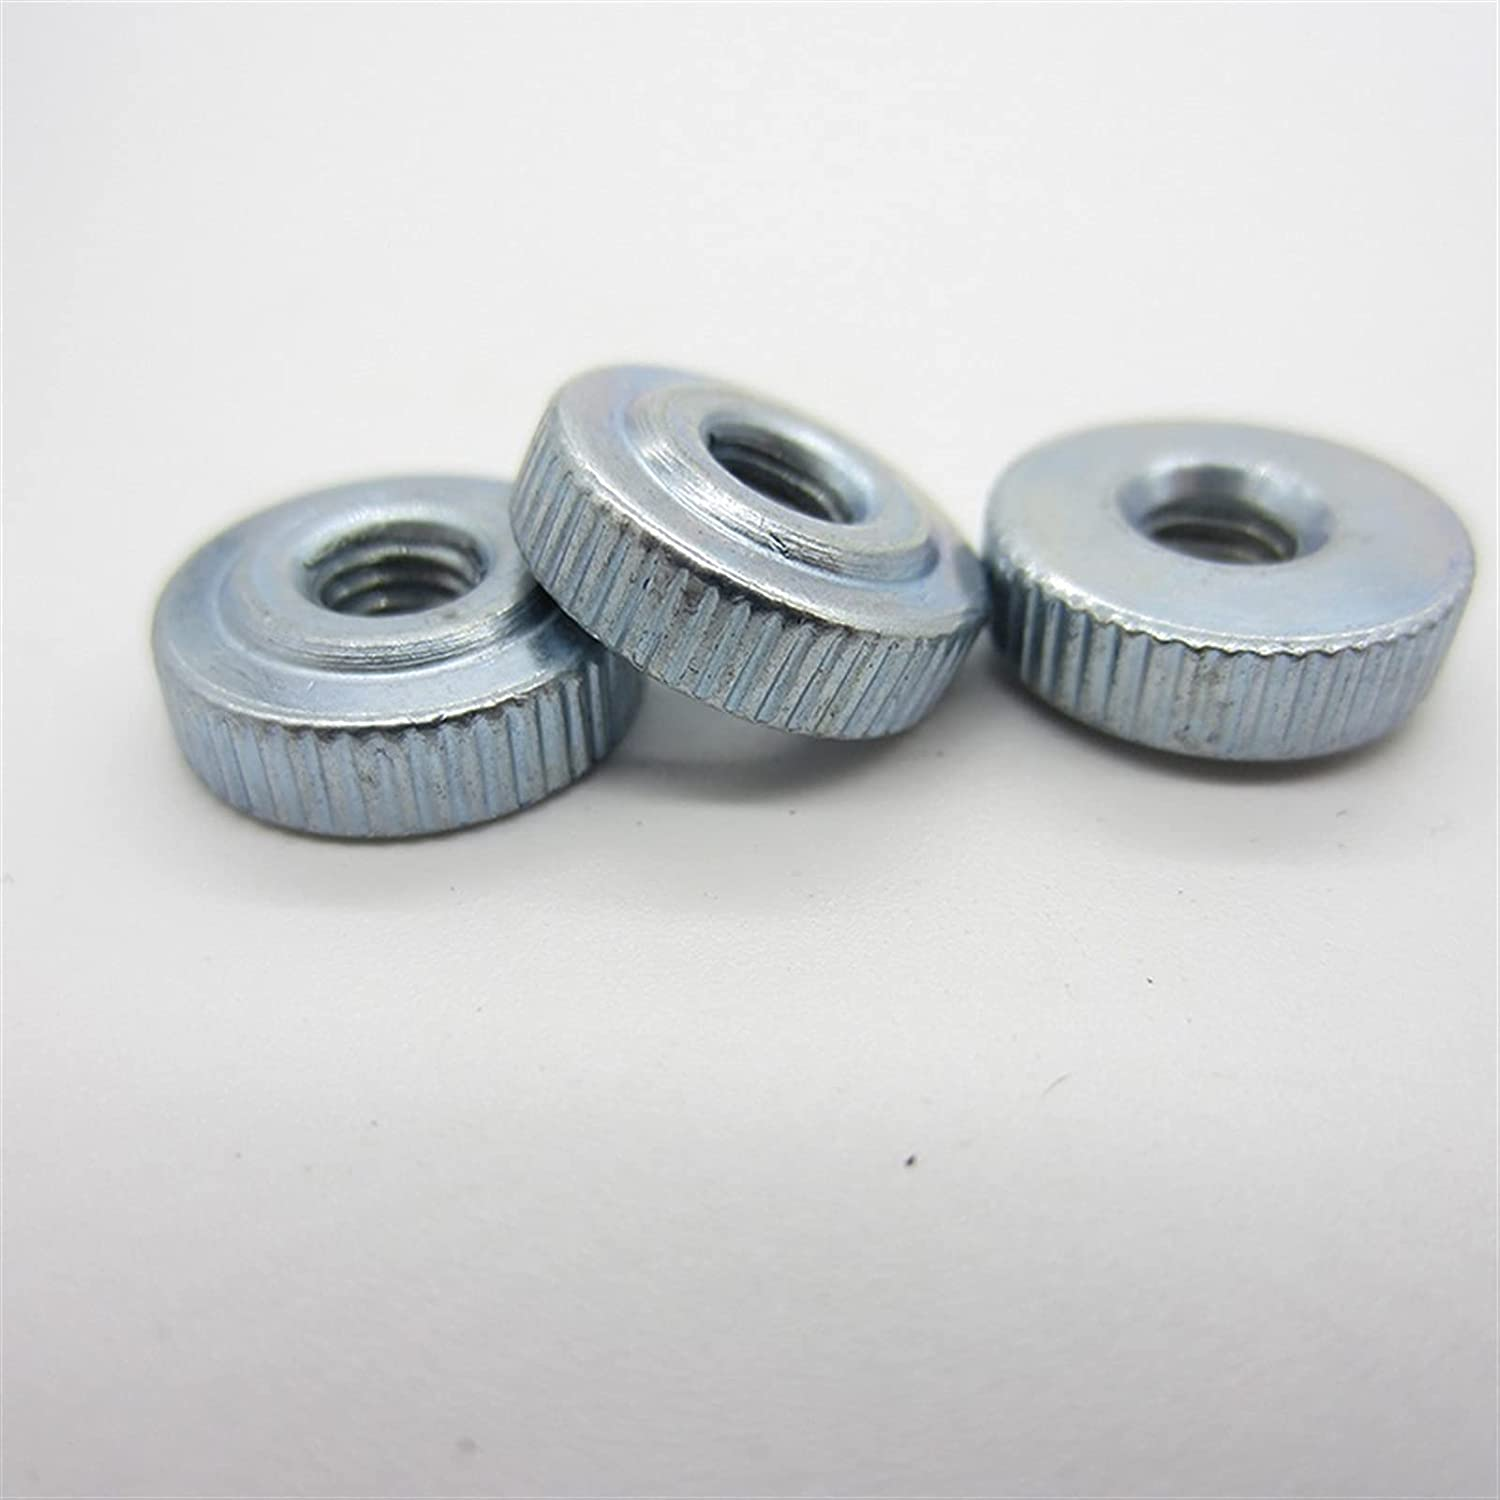 YMBHUO Stainless Steel nut 10Pcs DIN467 M5 M3 quality assurance Challenge the lowest price of Japan ☆ M4 Carbon GB807 M6